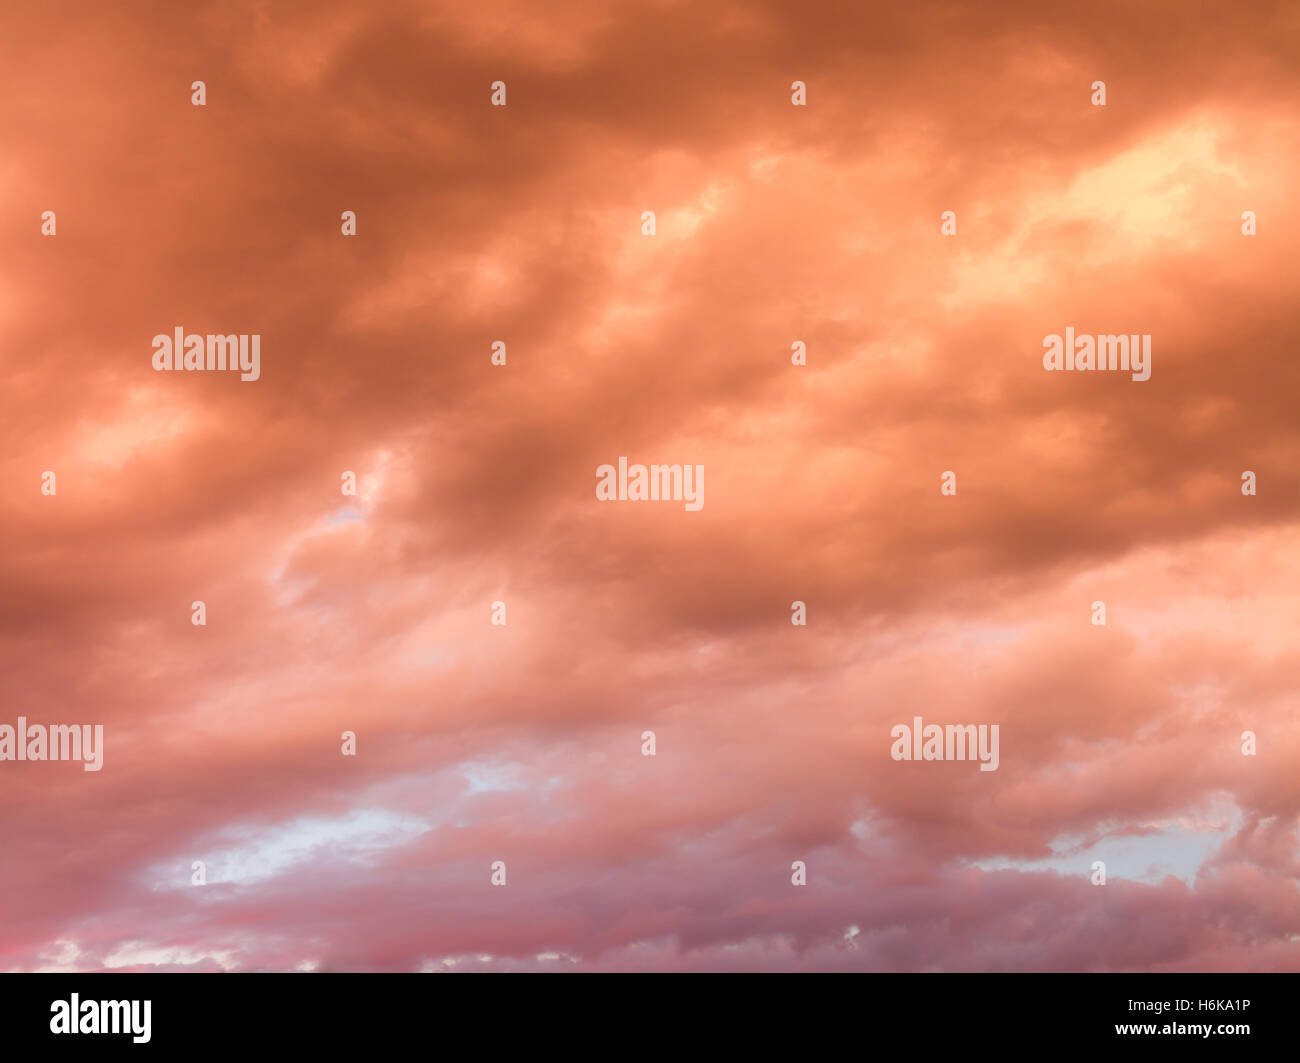 Colorful skyscape with versicolored clouds at sunset dusk - Stock Image